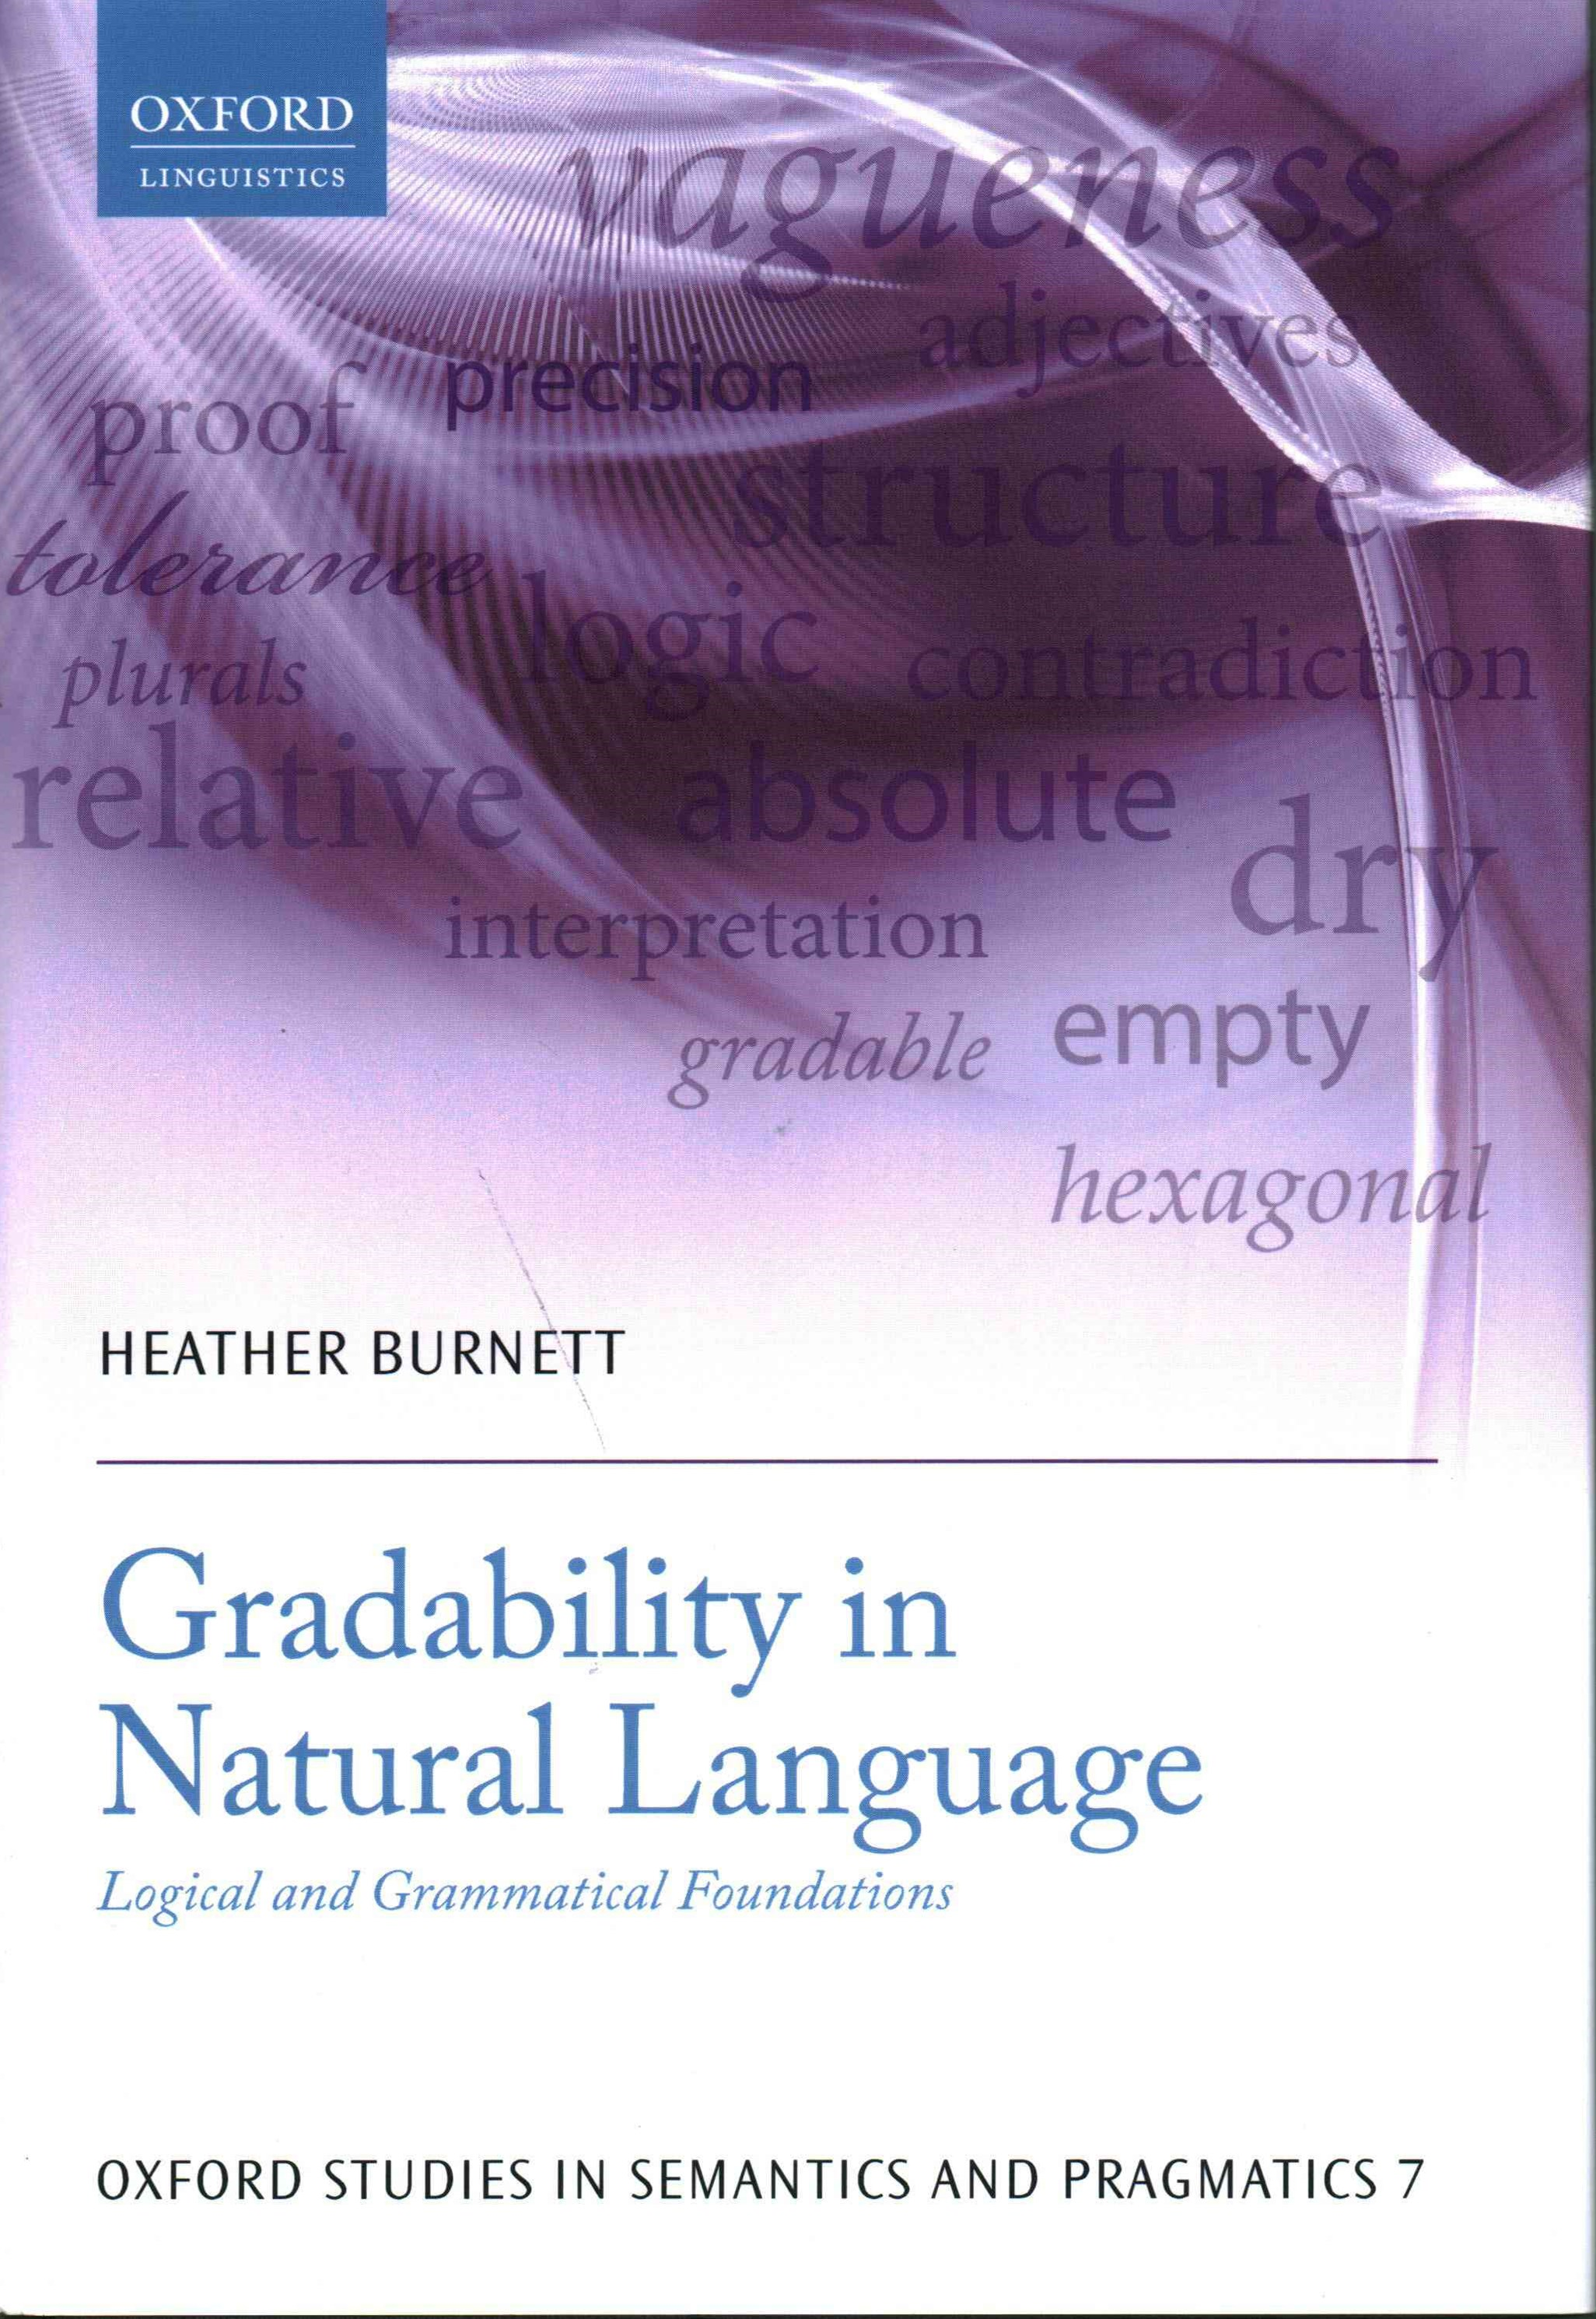 Gradability in Natural Language